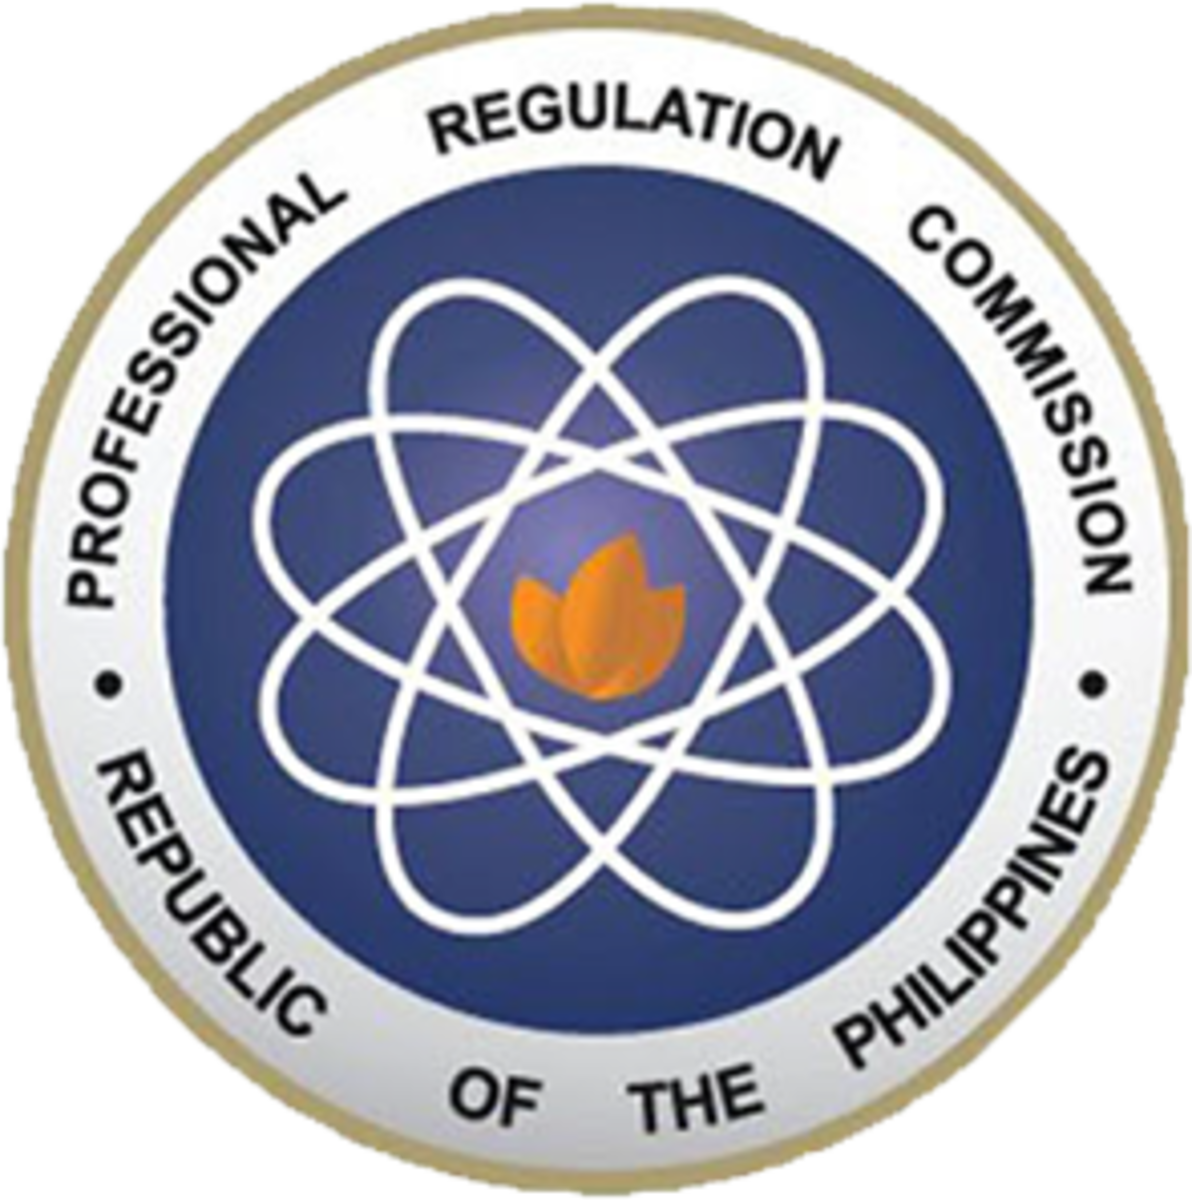 How to Apply for a Certified True Copy of Your PRC ID or Registration Certificate